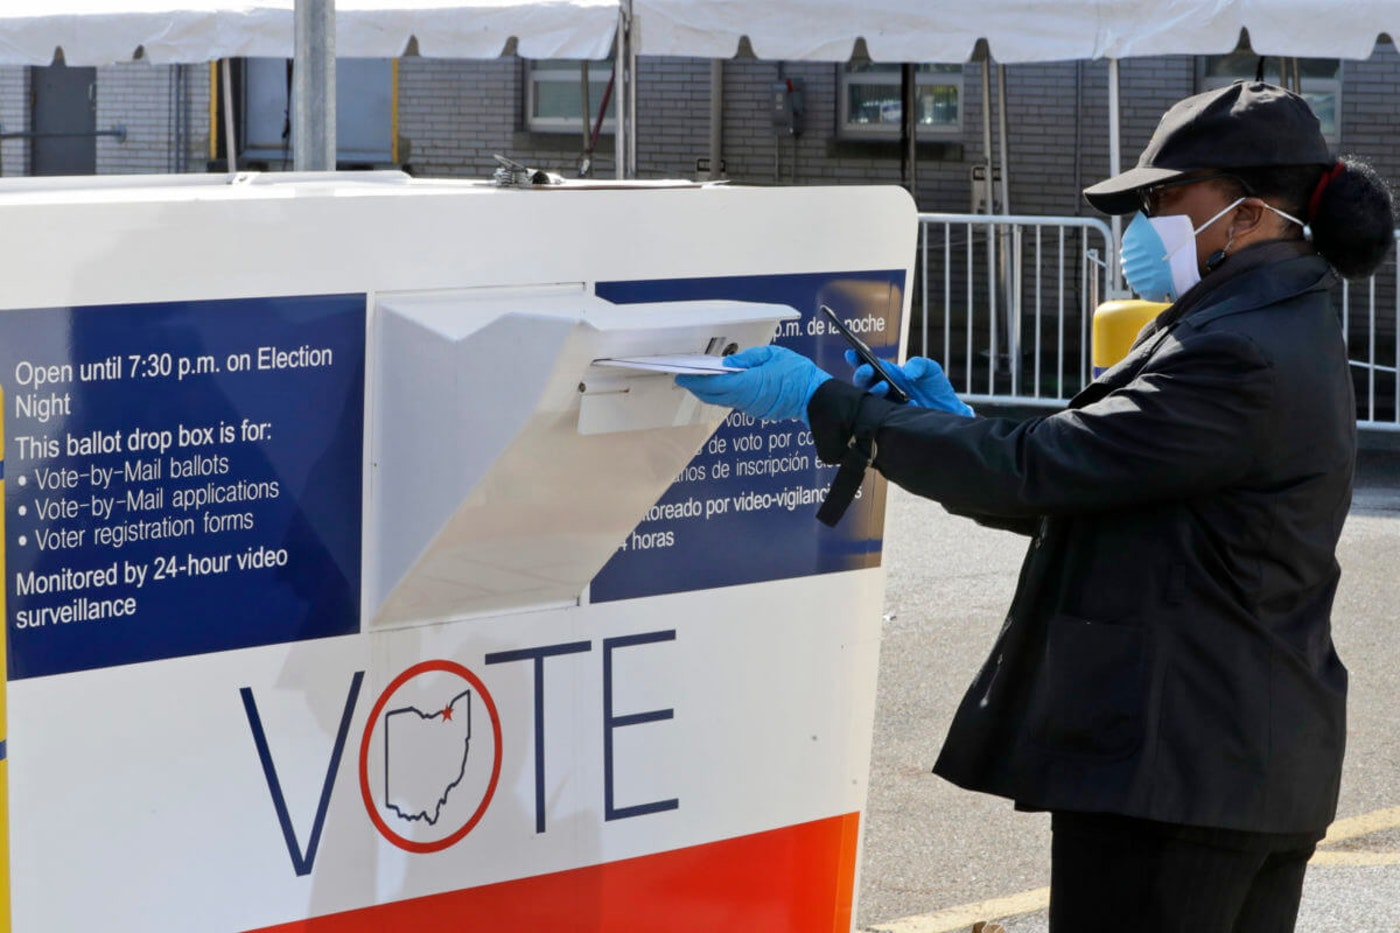 Voting rights advocates say thousands of ballots are in limbo as a federal judge weighs NC's absentee ballot procedures.